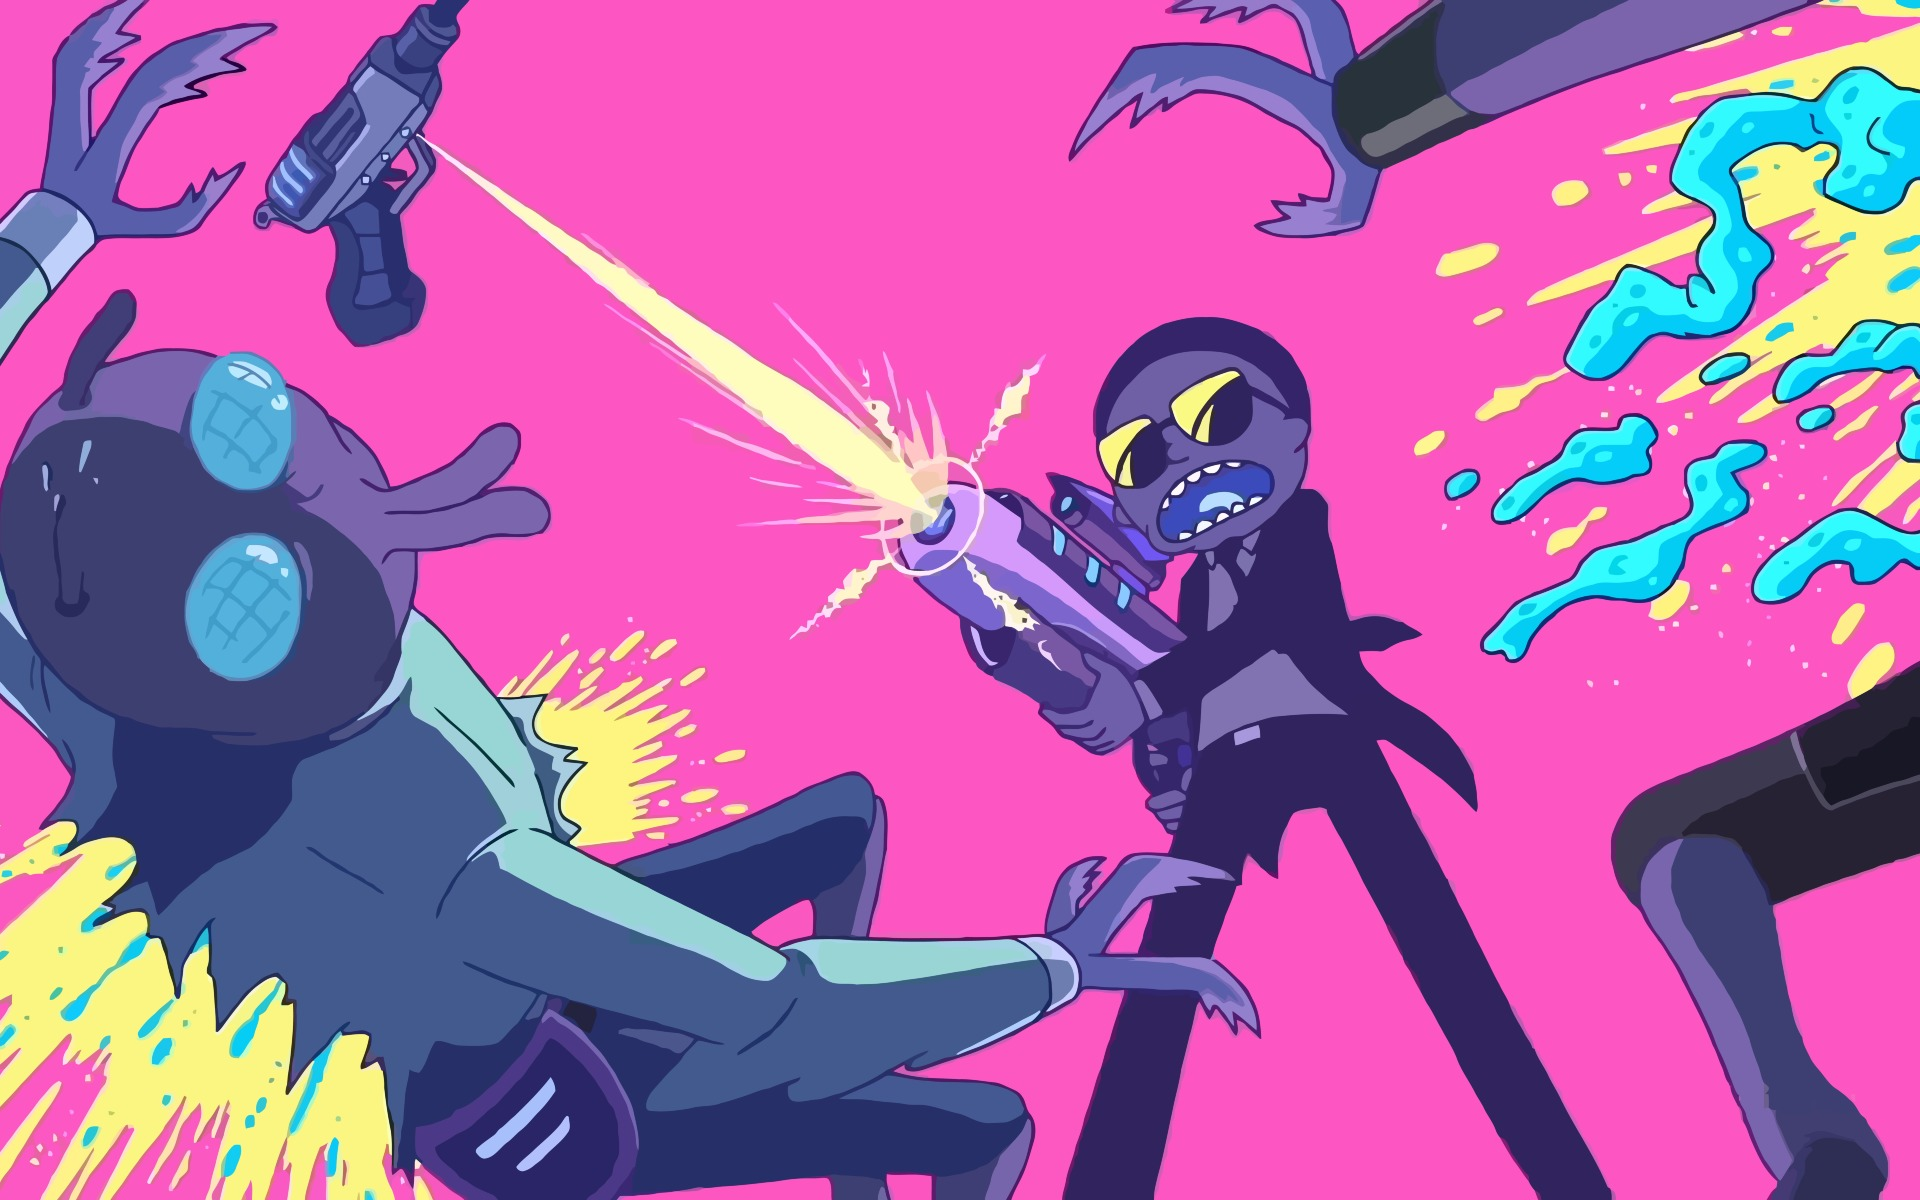 Download rick and morty fighting with aliens 1600x900 resolution hd 8k wallpaper - Rick and morty download ...